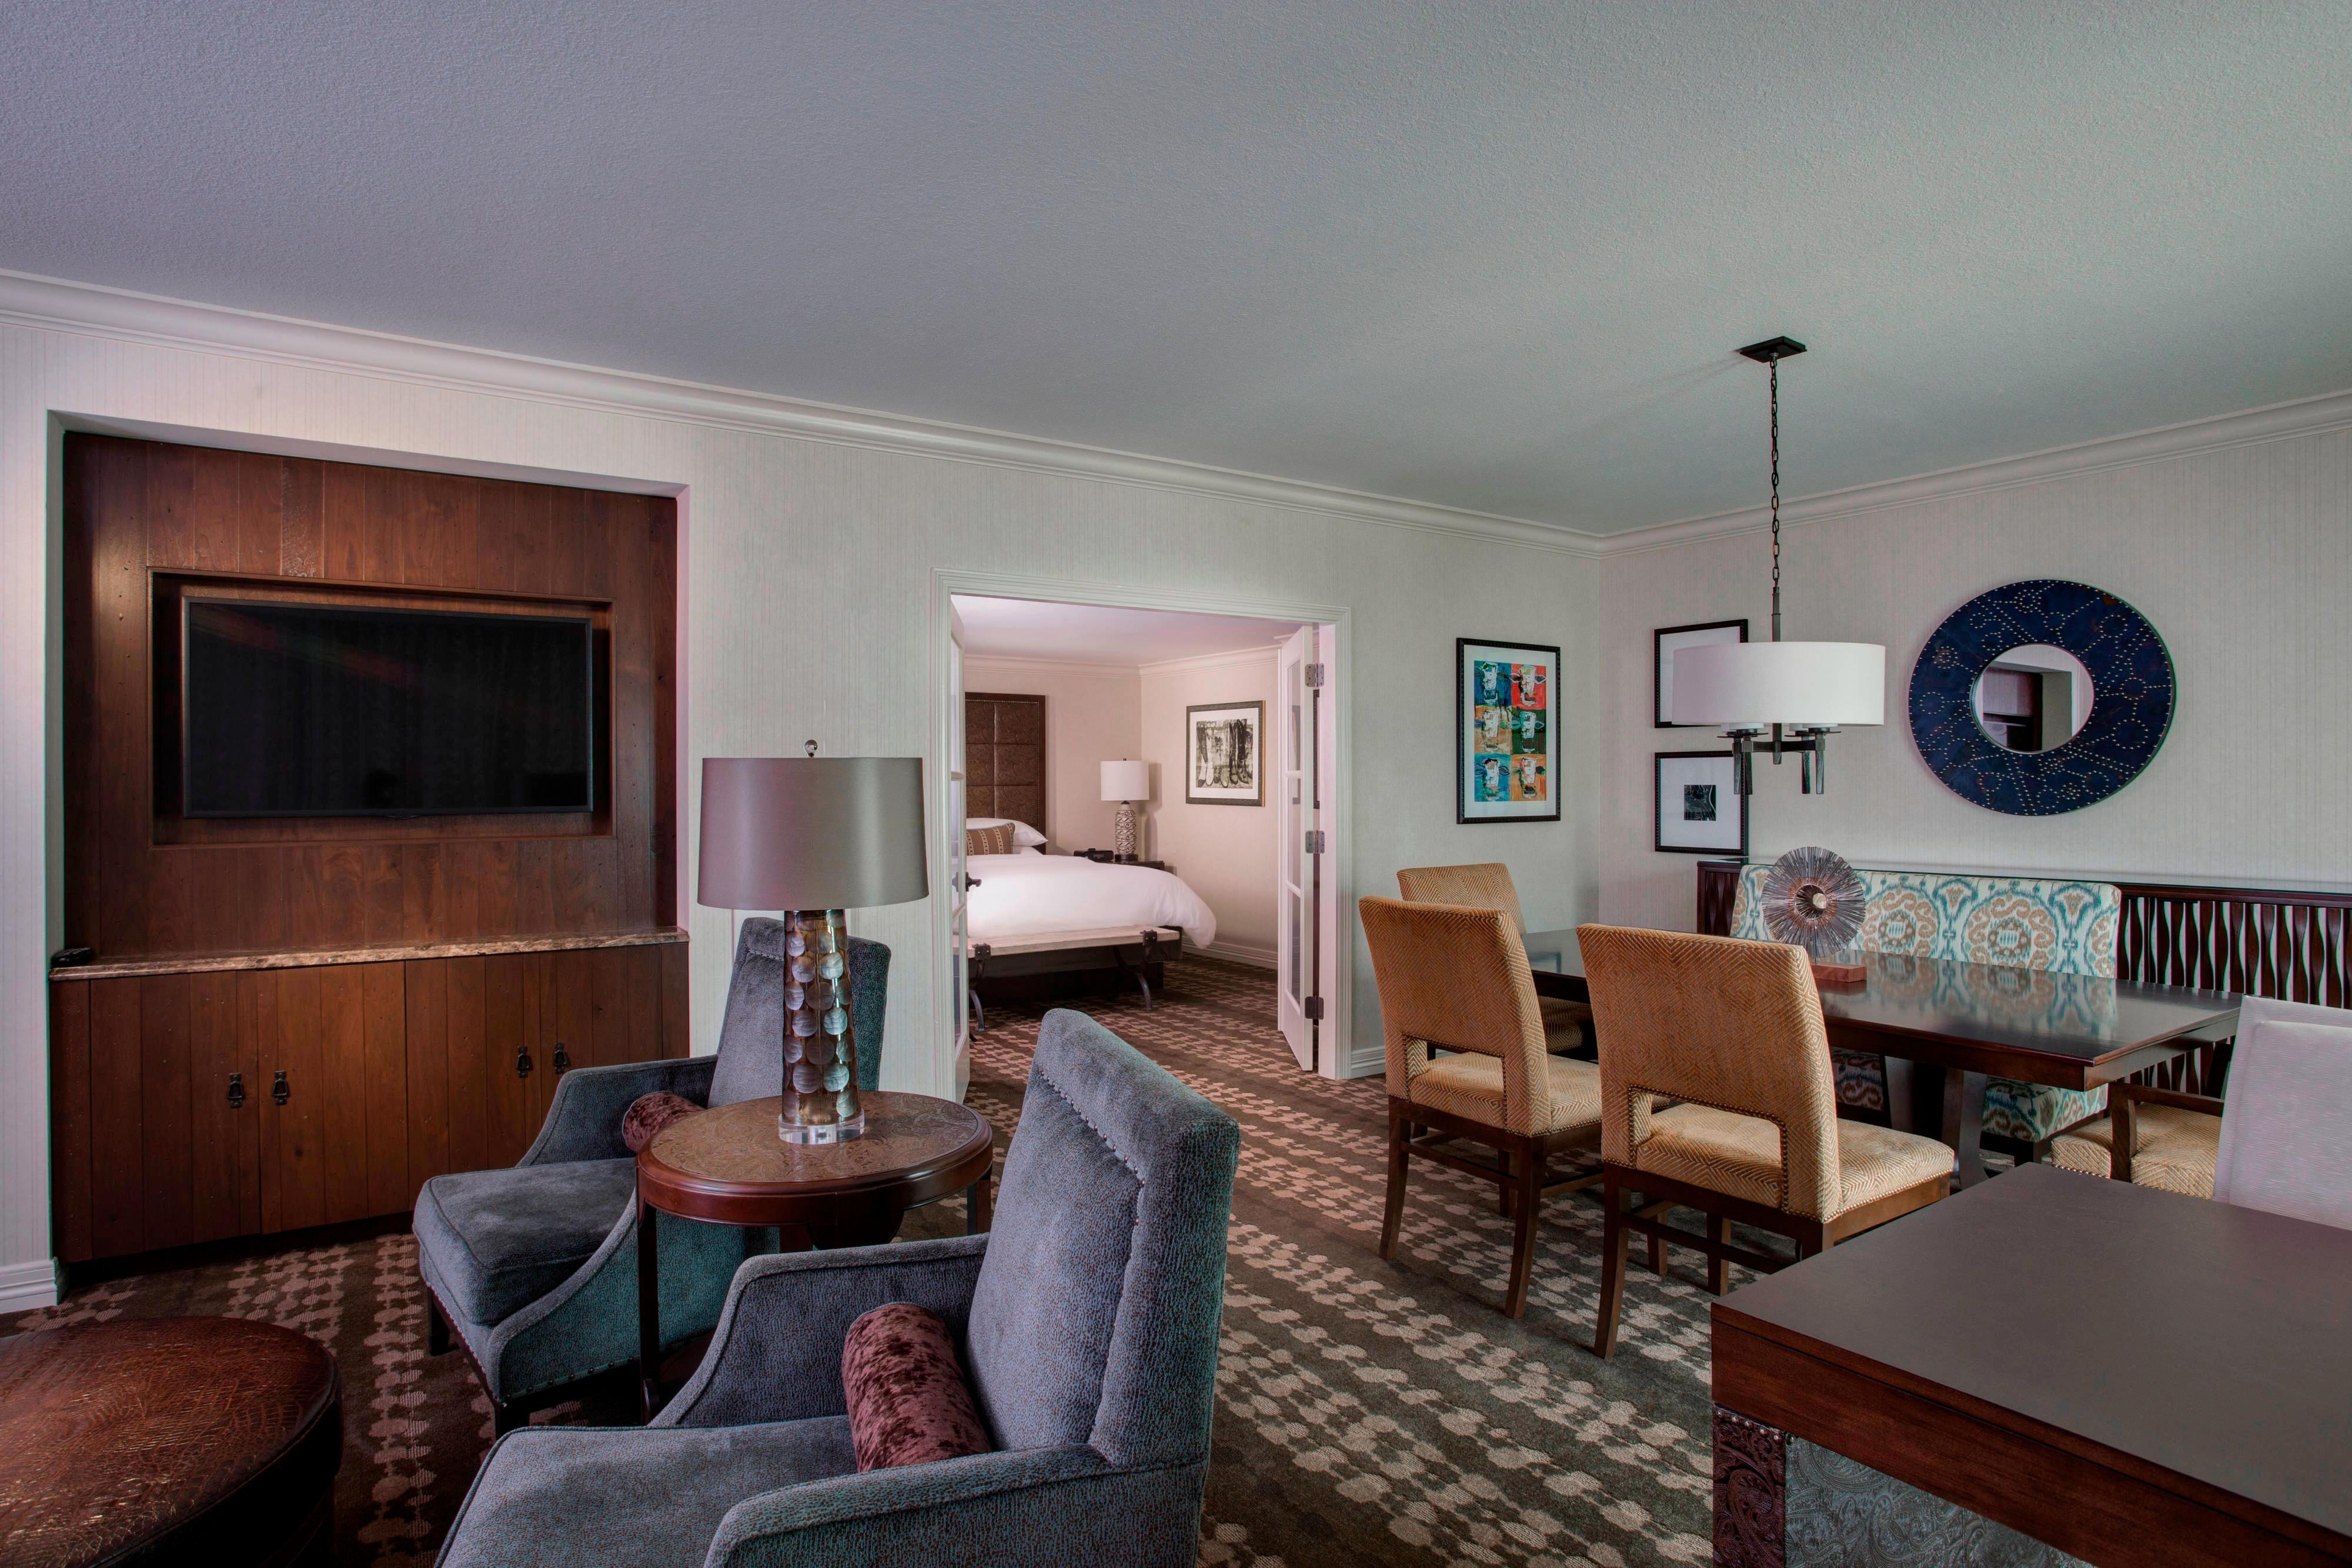 Grapevine Hotel Rooms And Suites Gaylord Texan Resort